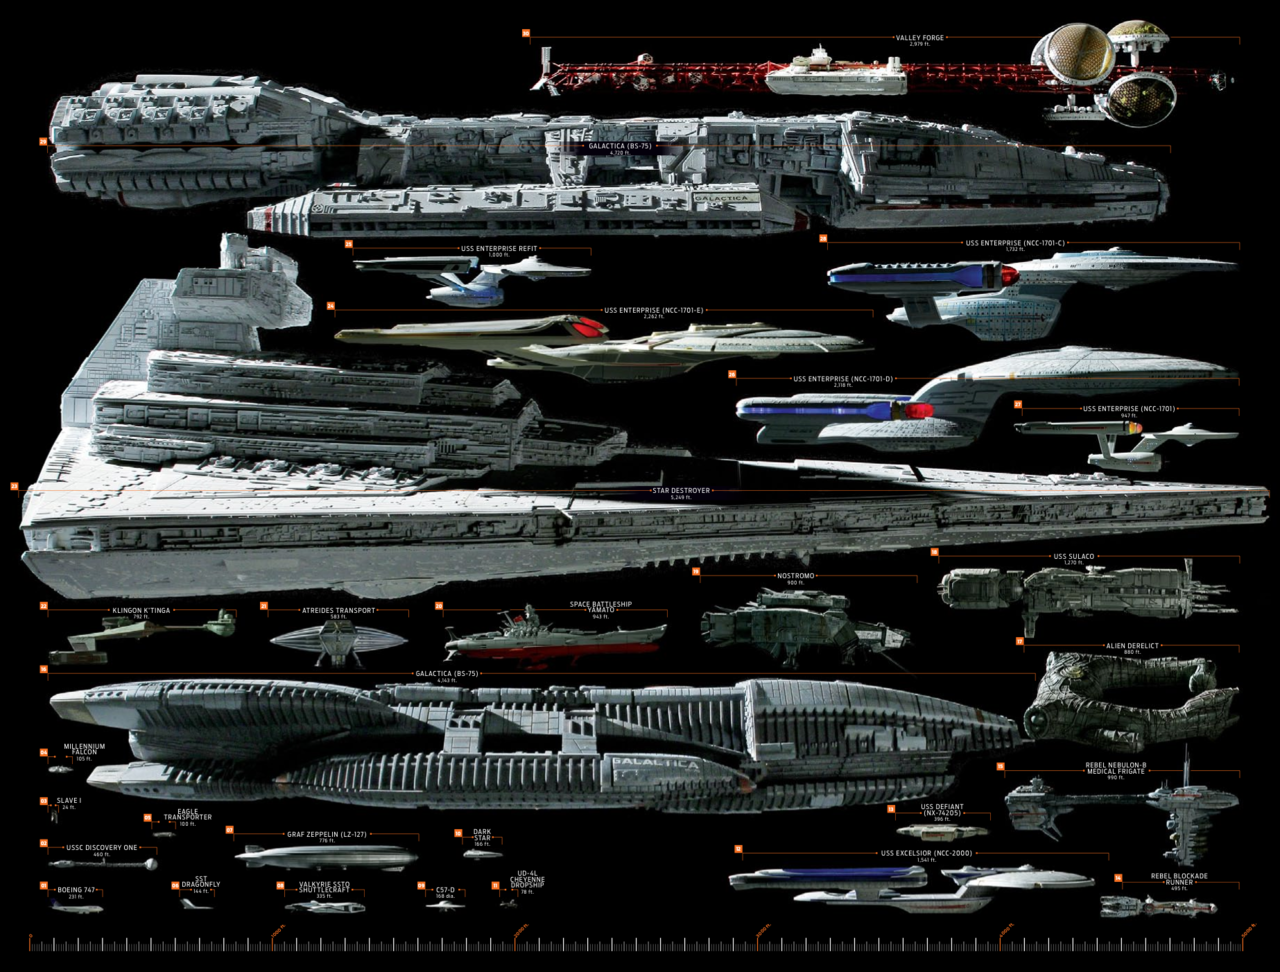 Spaceship size comparison poster